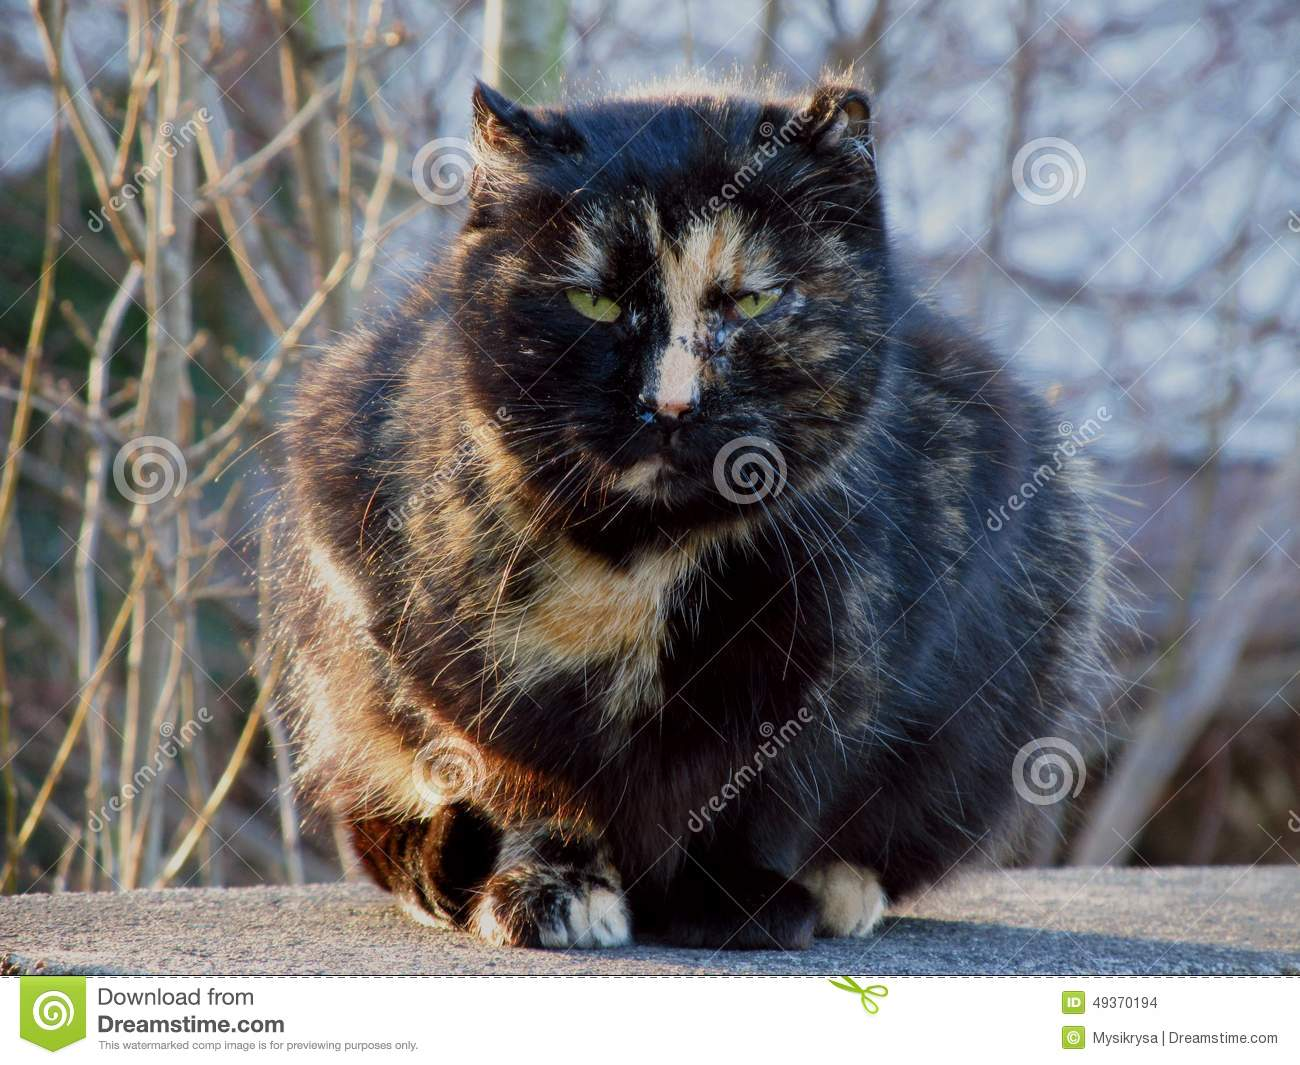 Big Fat Angry Cat Stock Photo. Image Of Fierce, Animal